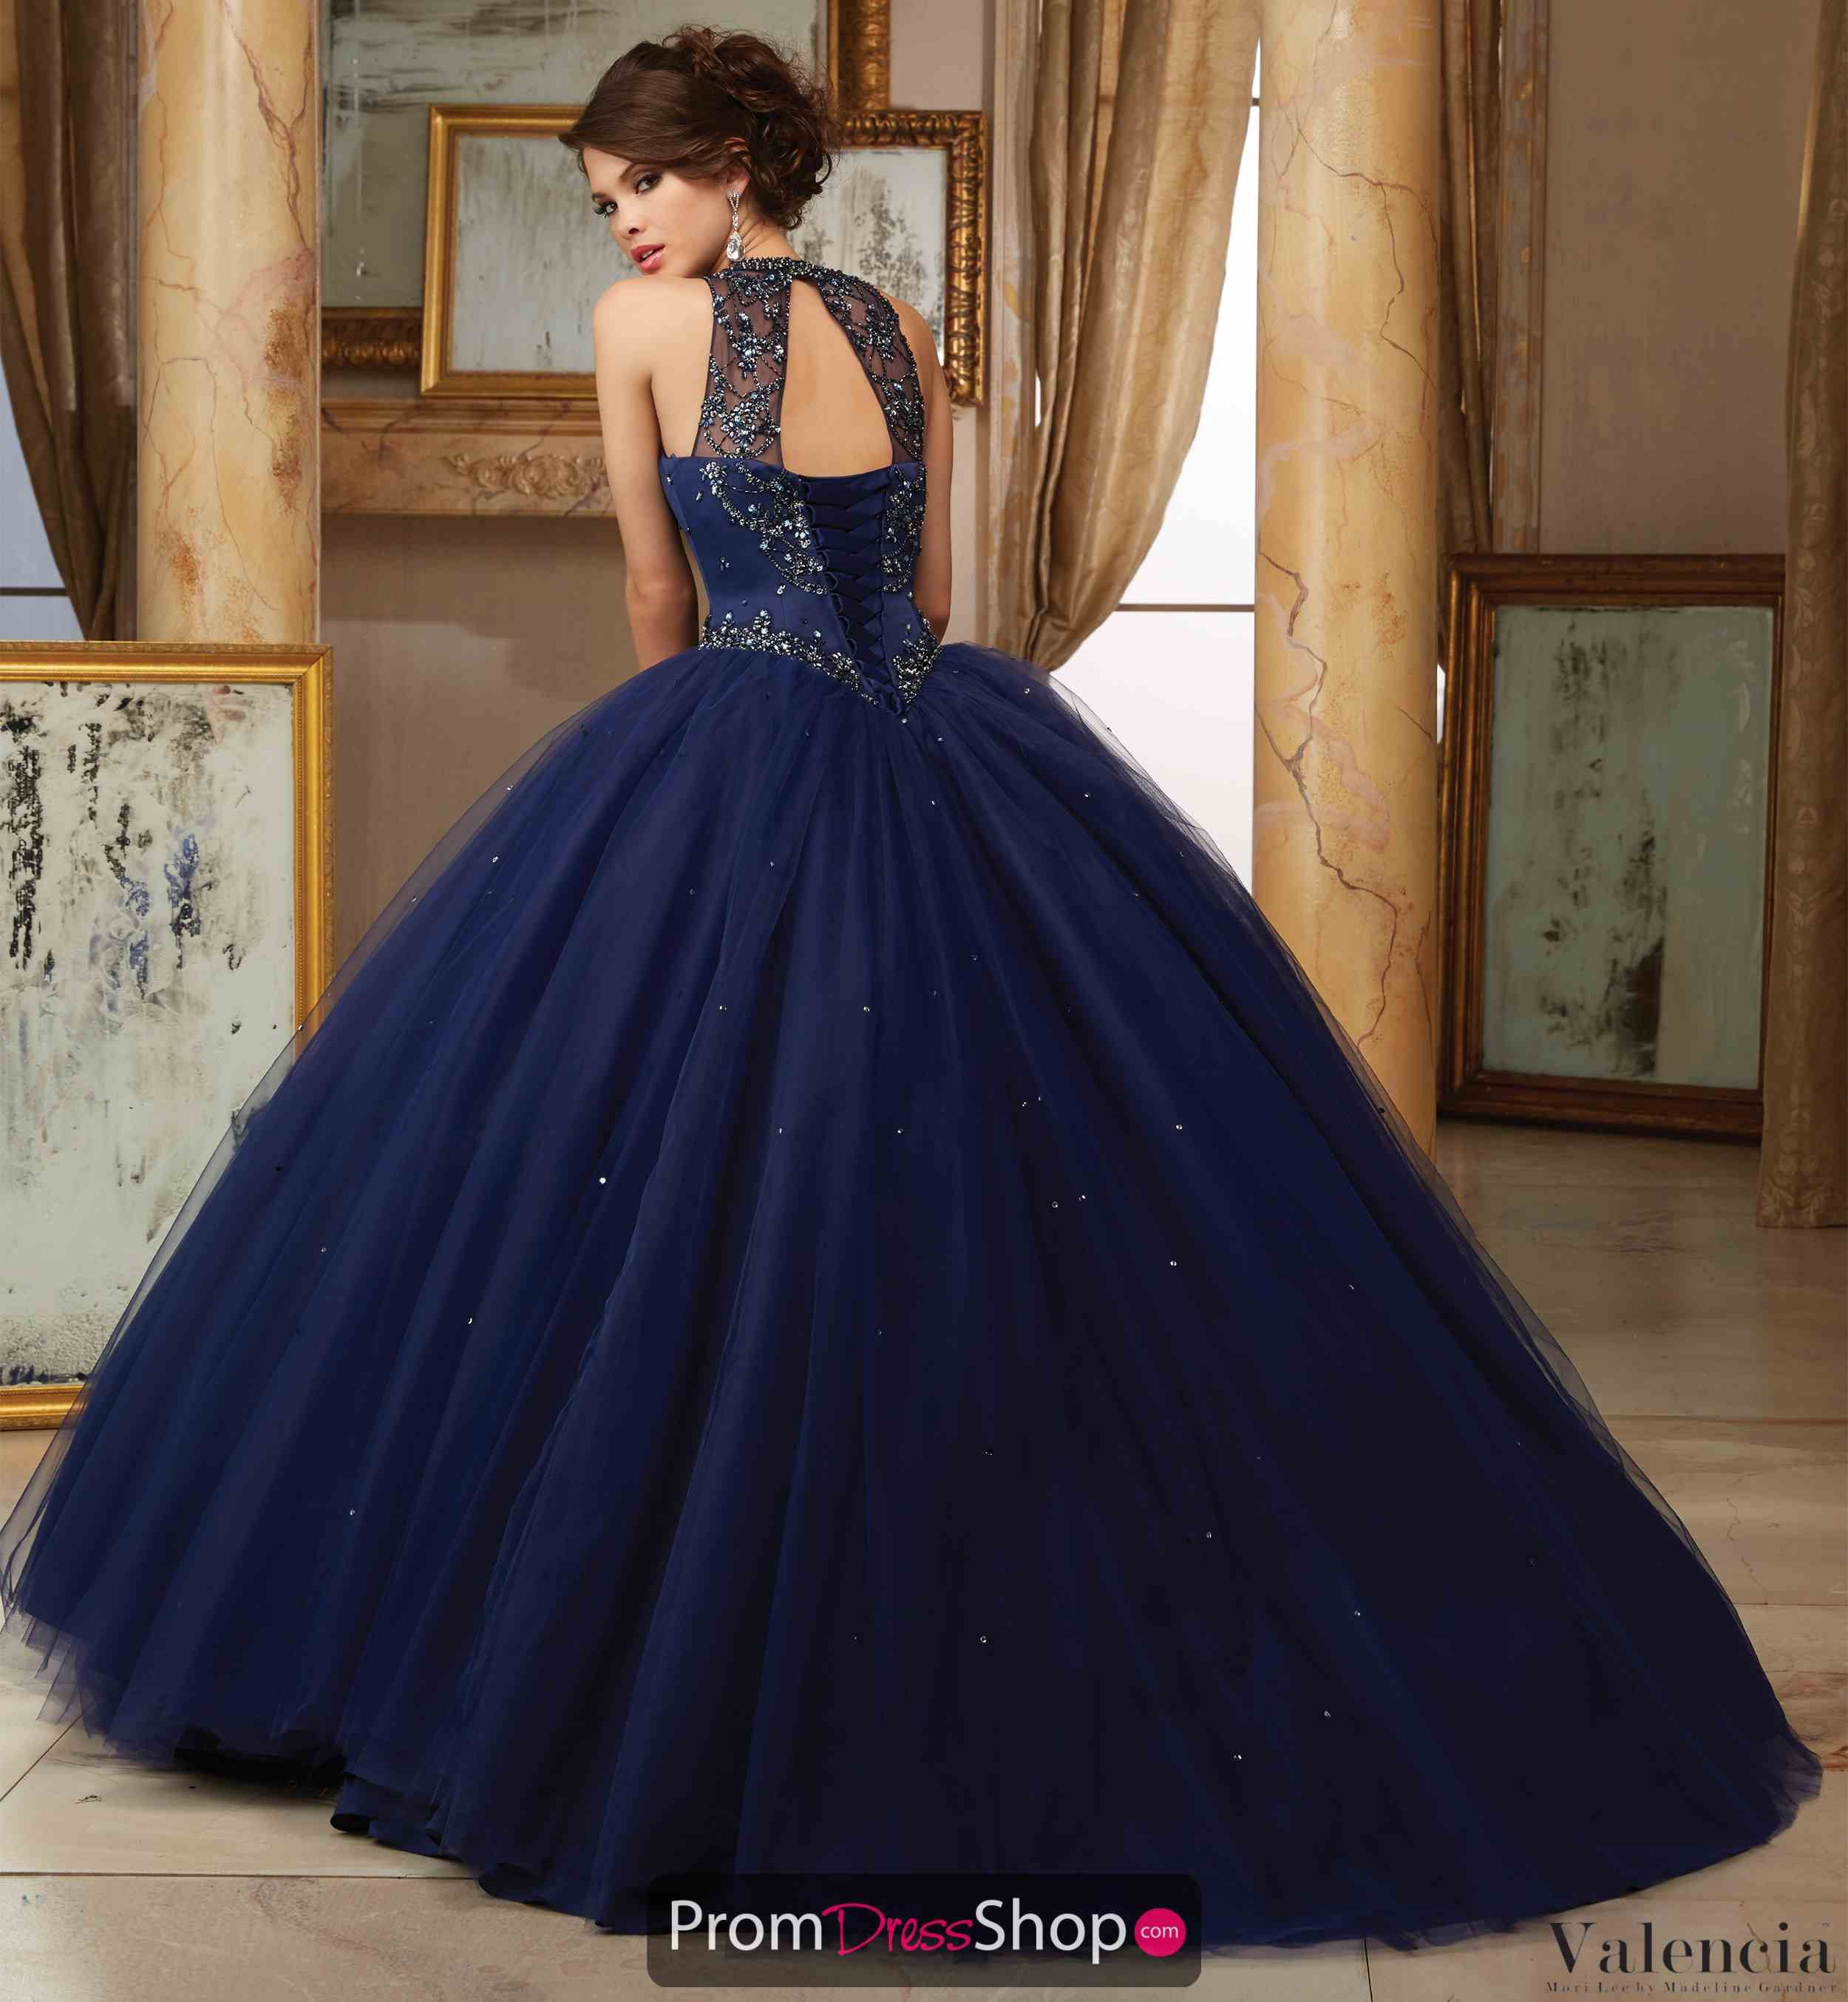 5801e156389 Vizcaya Quinceanera Beaded Ball Gown 60008